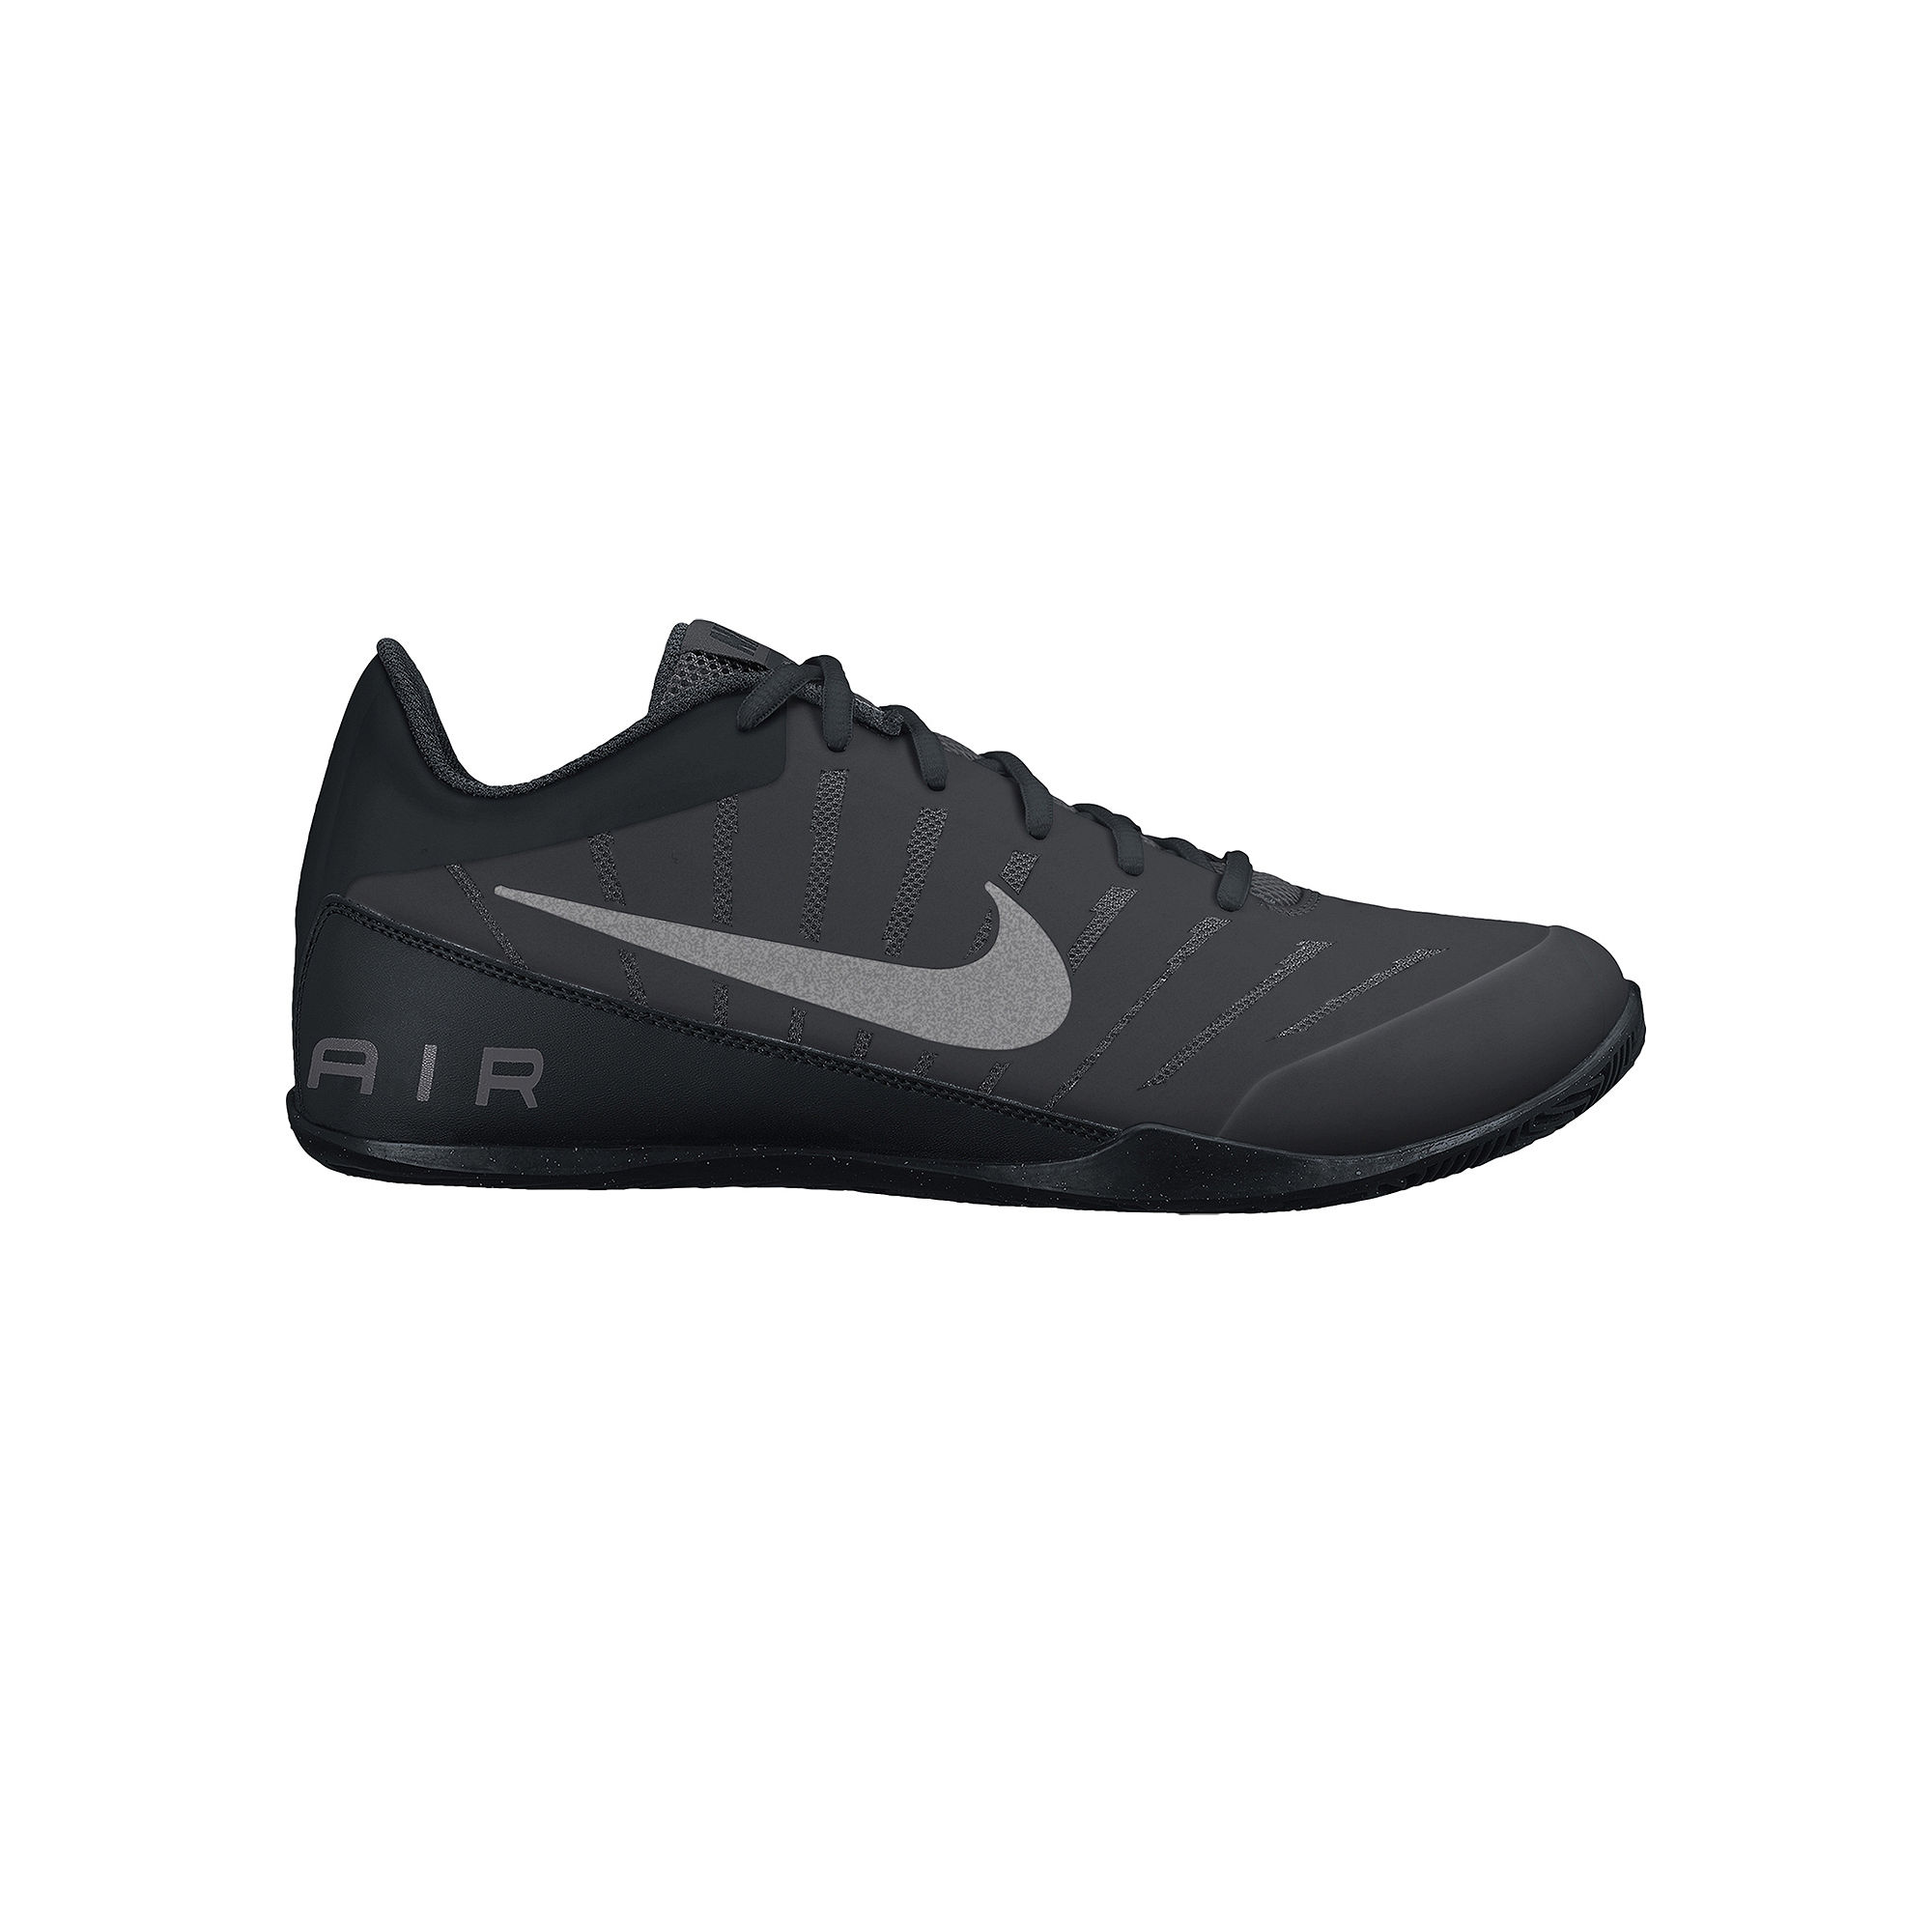 42275807336 ... UPC 886548689194 product image for Nike Air Mavin Low 2 Mens Basketball  Shoes